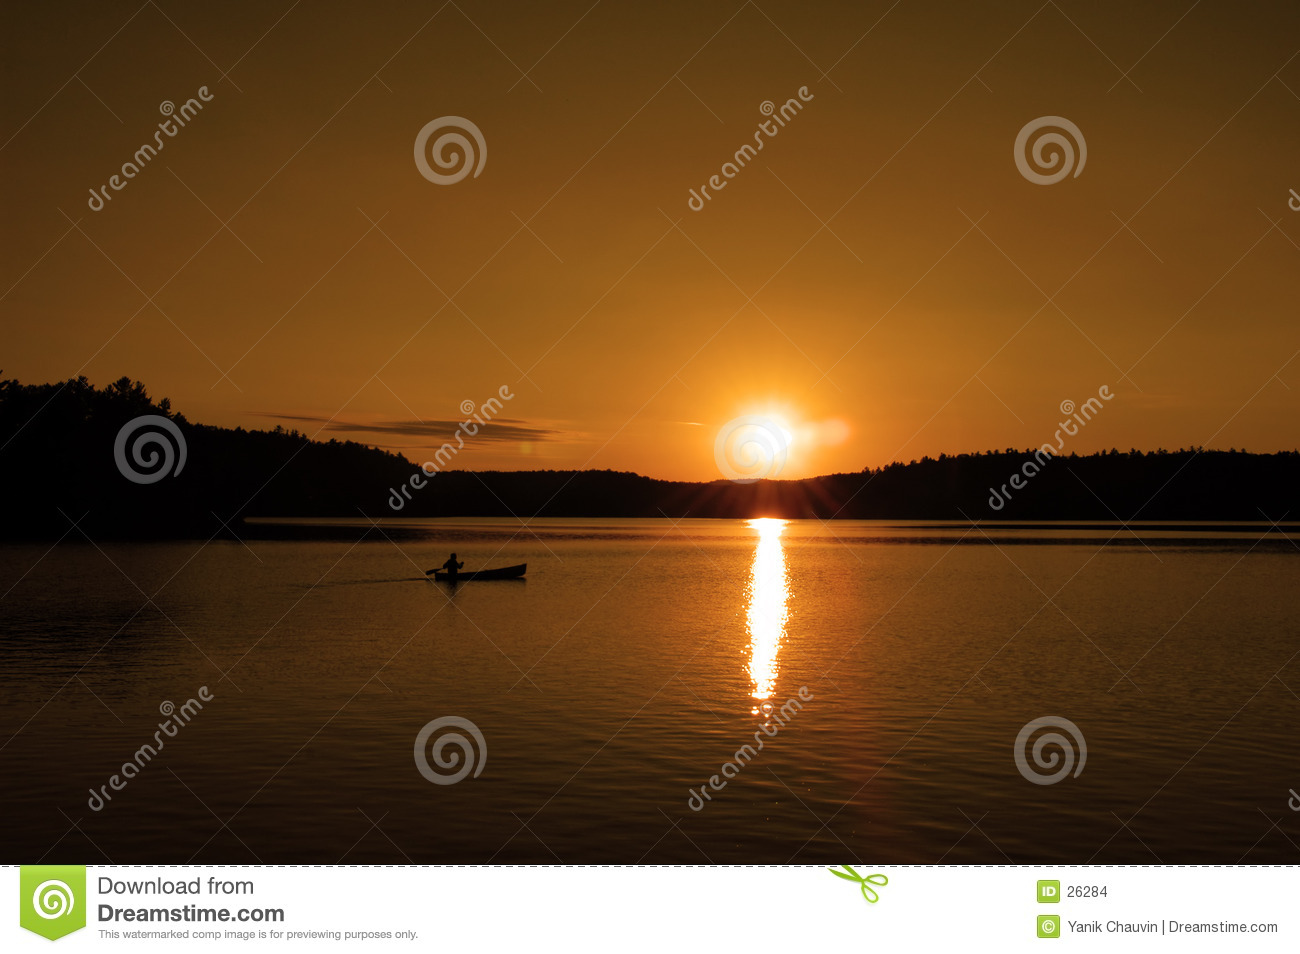 Canoe at sunset 2